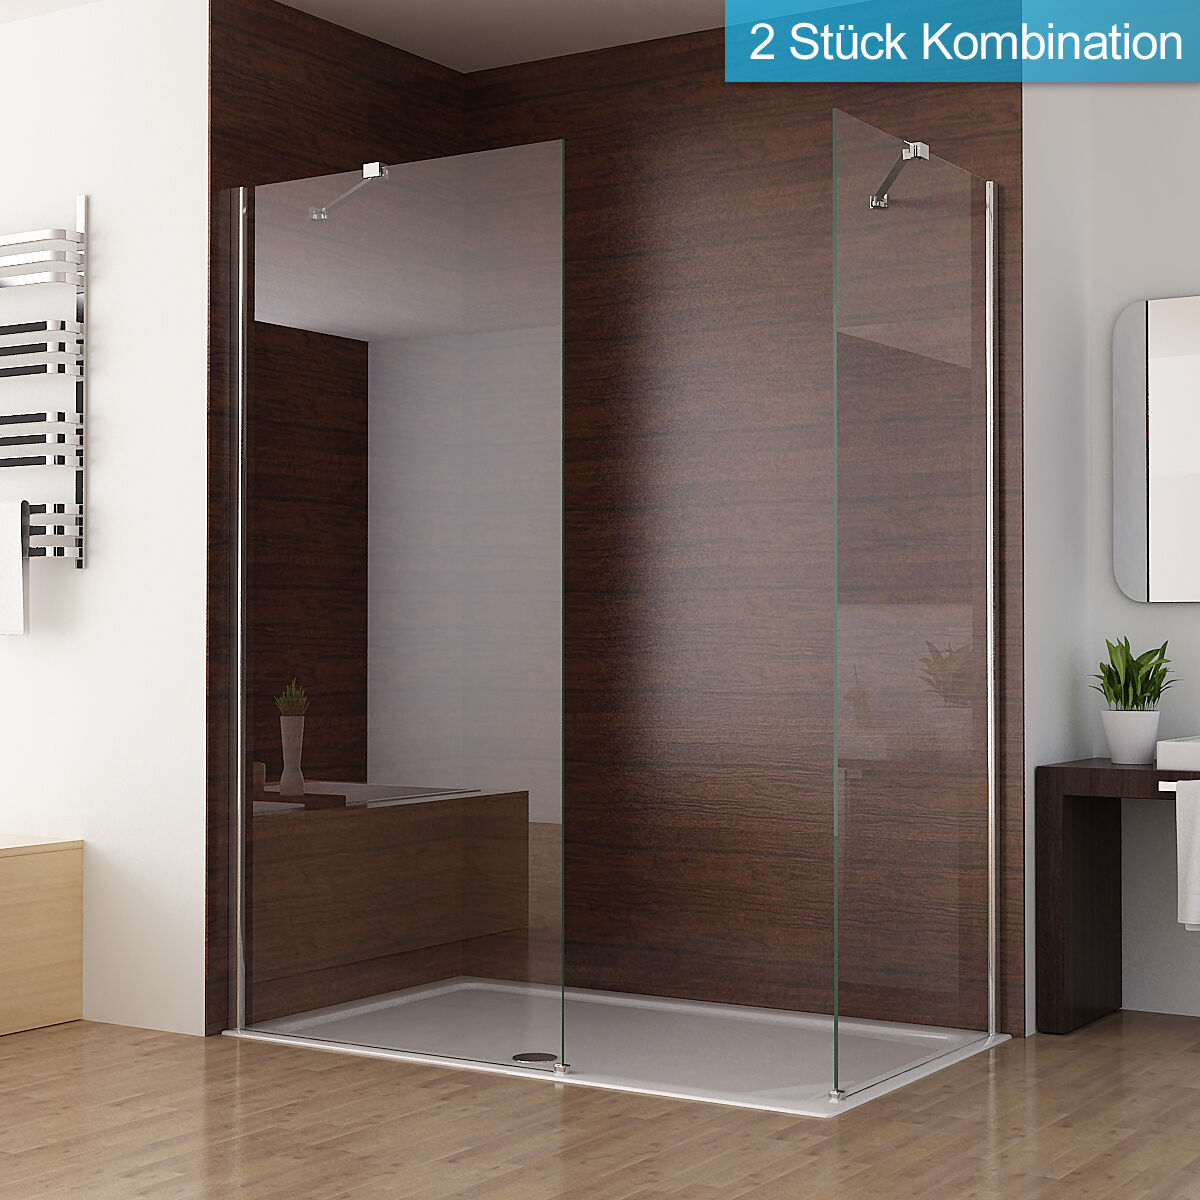 duschabtrennung walk in duschwand seitenwand dusche duschtrennwand 70 90 x 195cm ebay. Black Bedroom Furniture Sets. Home Design Ideas